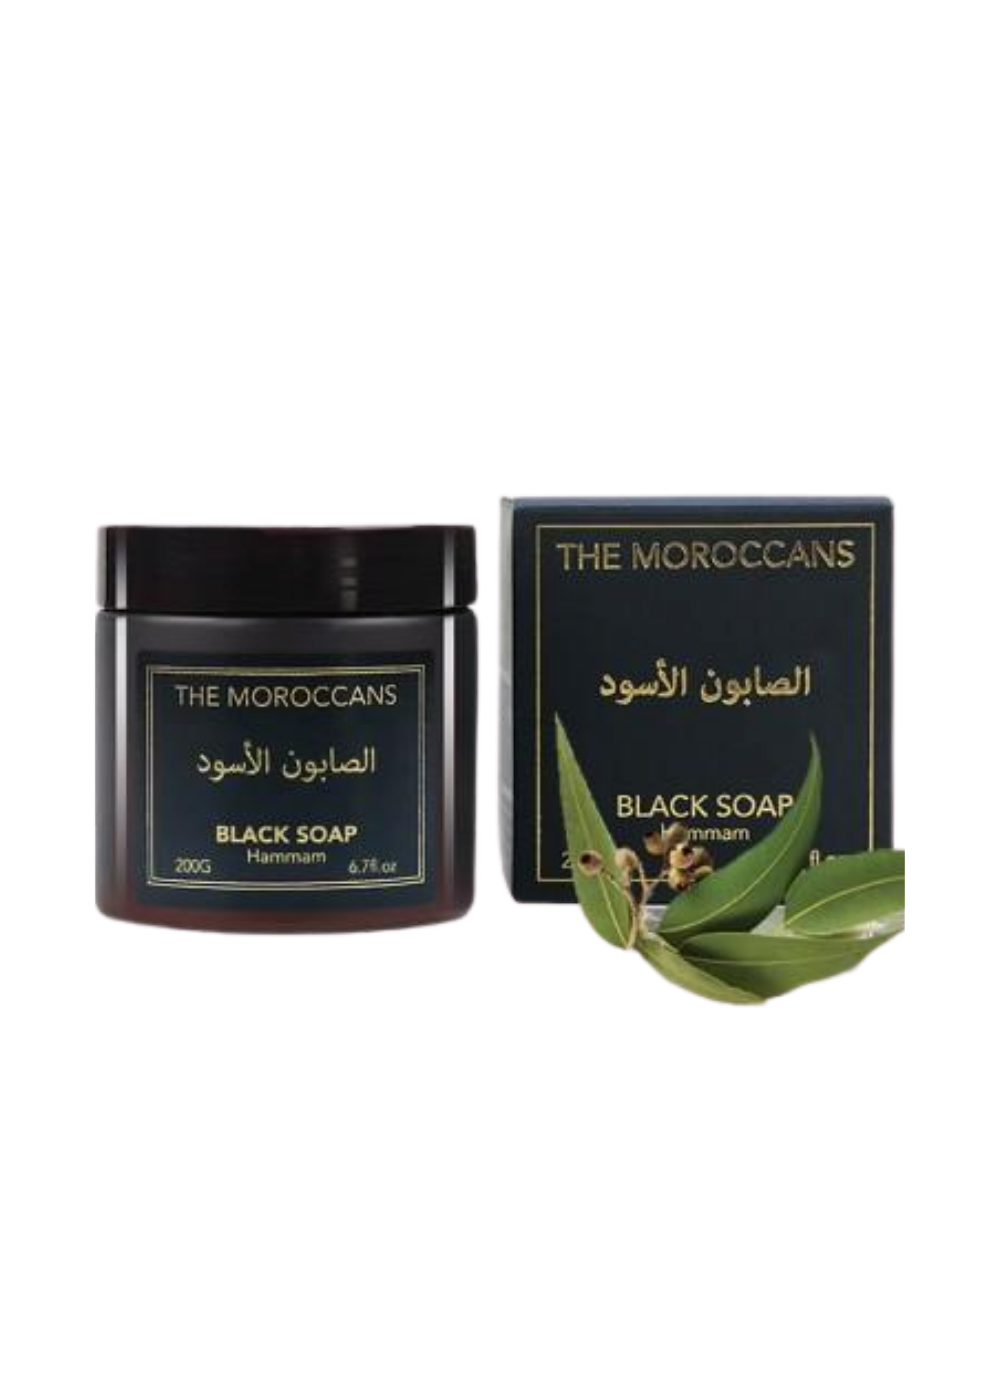 The Moroccans Black Soap